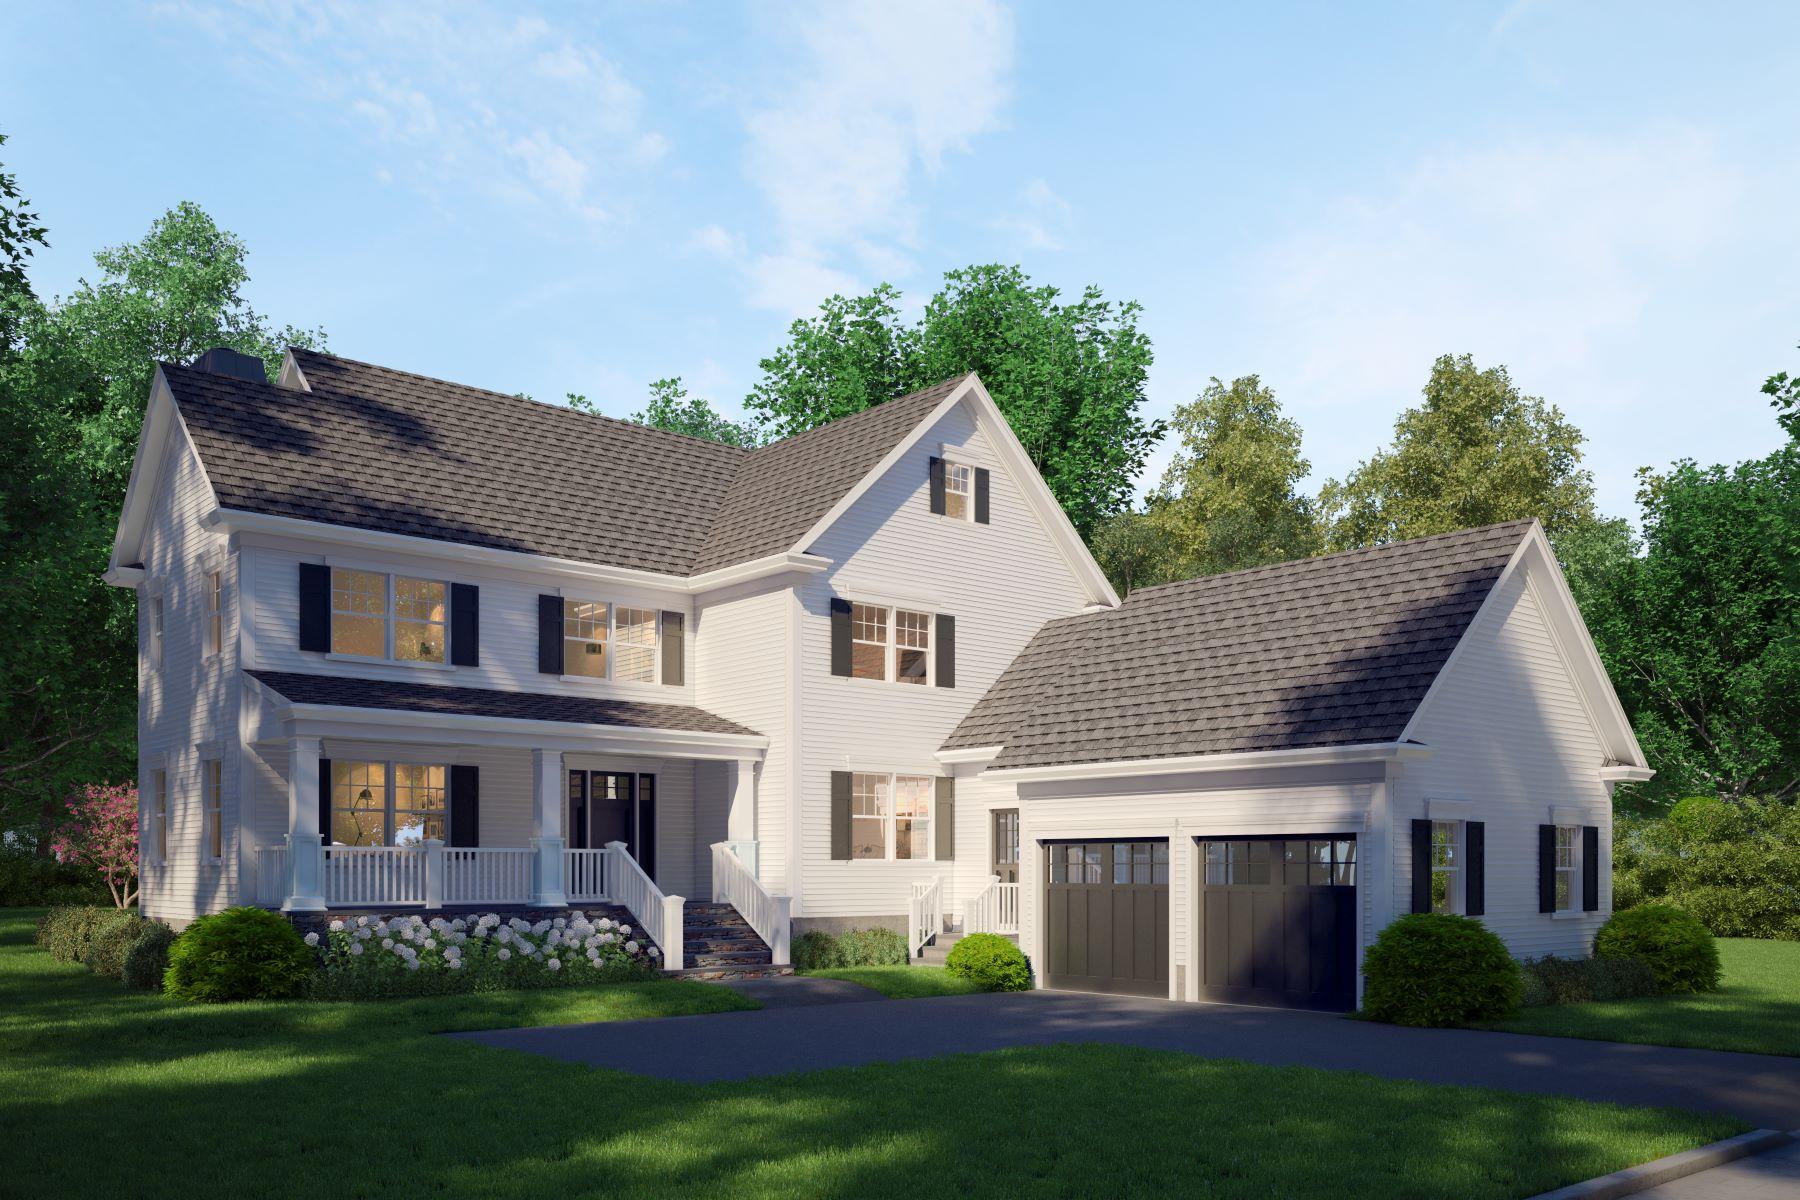 Single Family Home for Sale at Beautifully Designed New Construction in Scarsdale 42 Crossway Scarsdale, New York 10583 United States